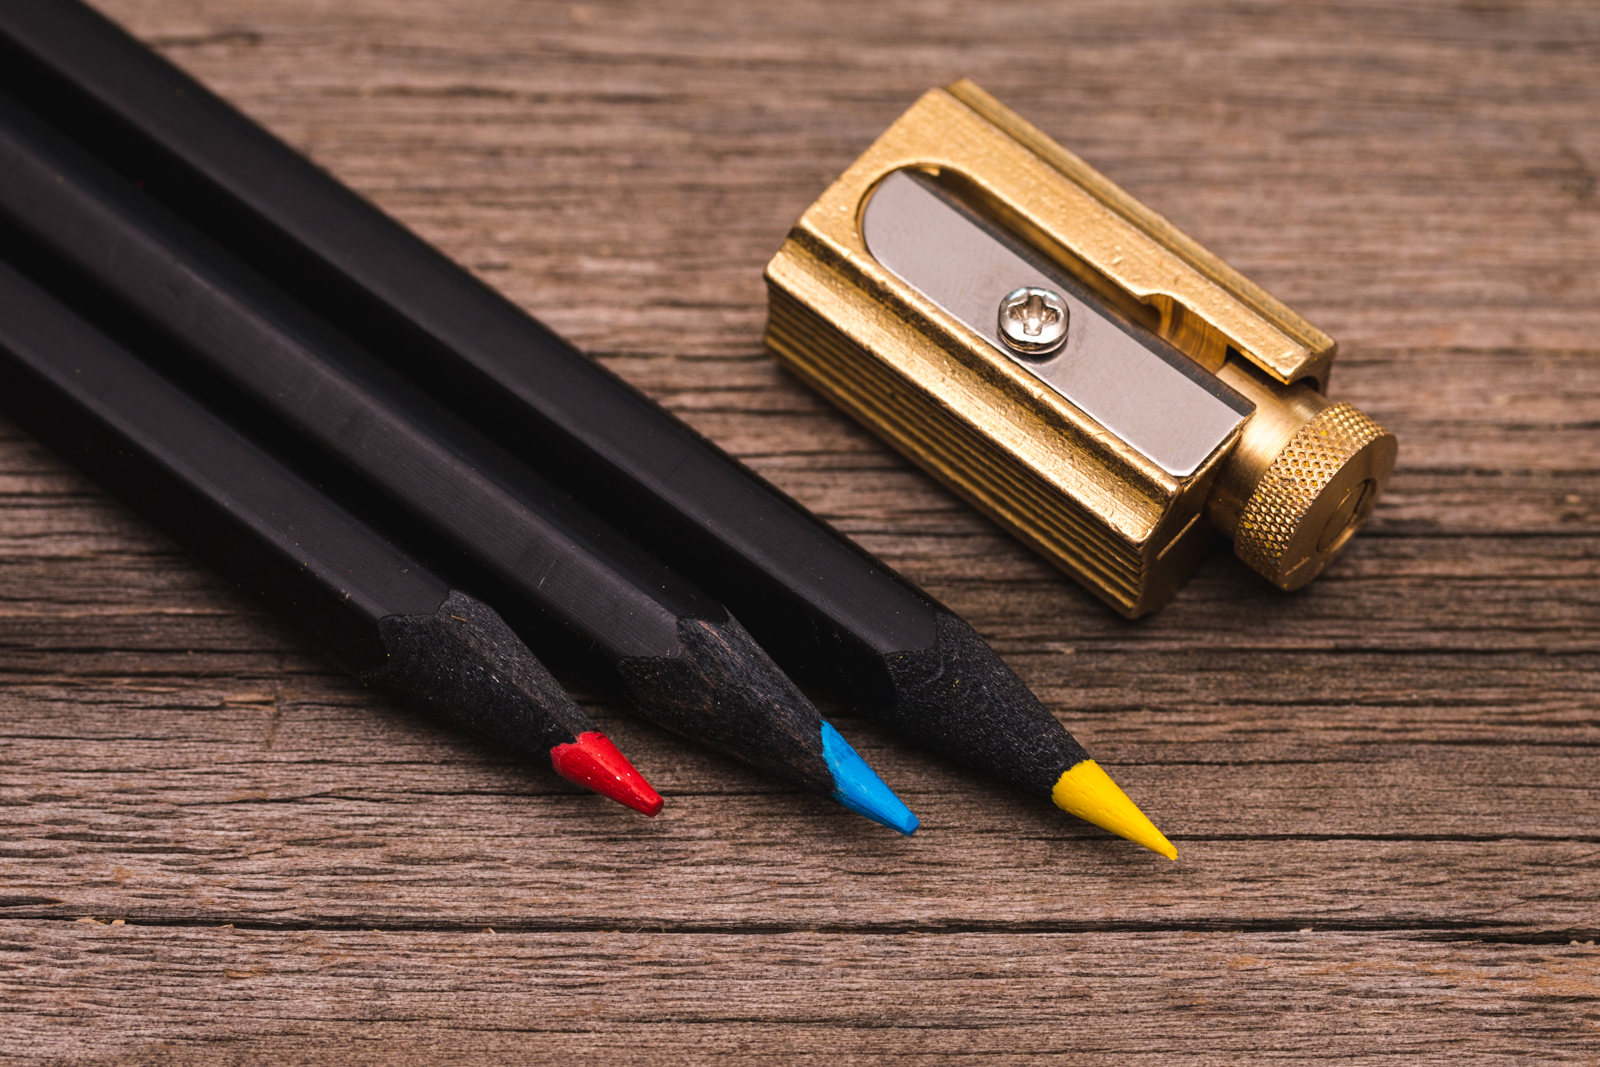 Dux - Adjustable Pencil Sharpener